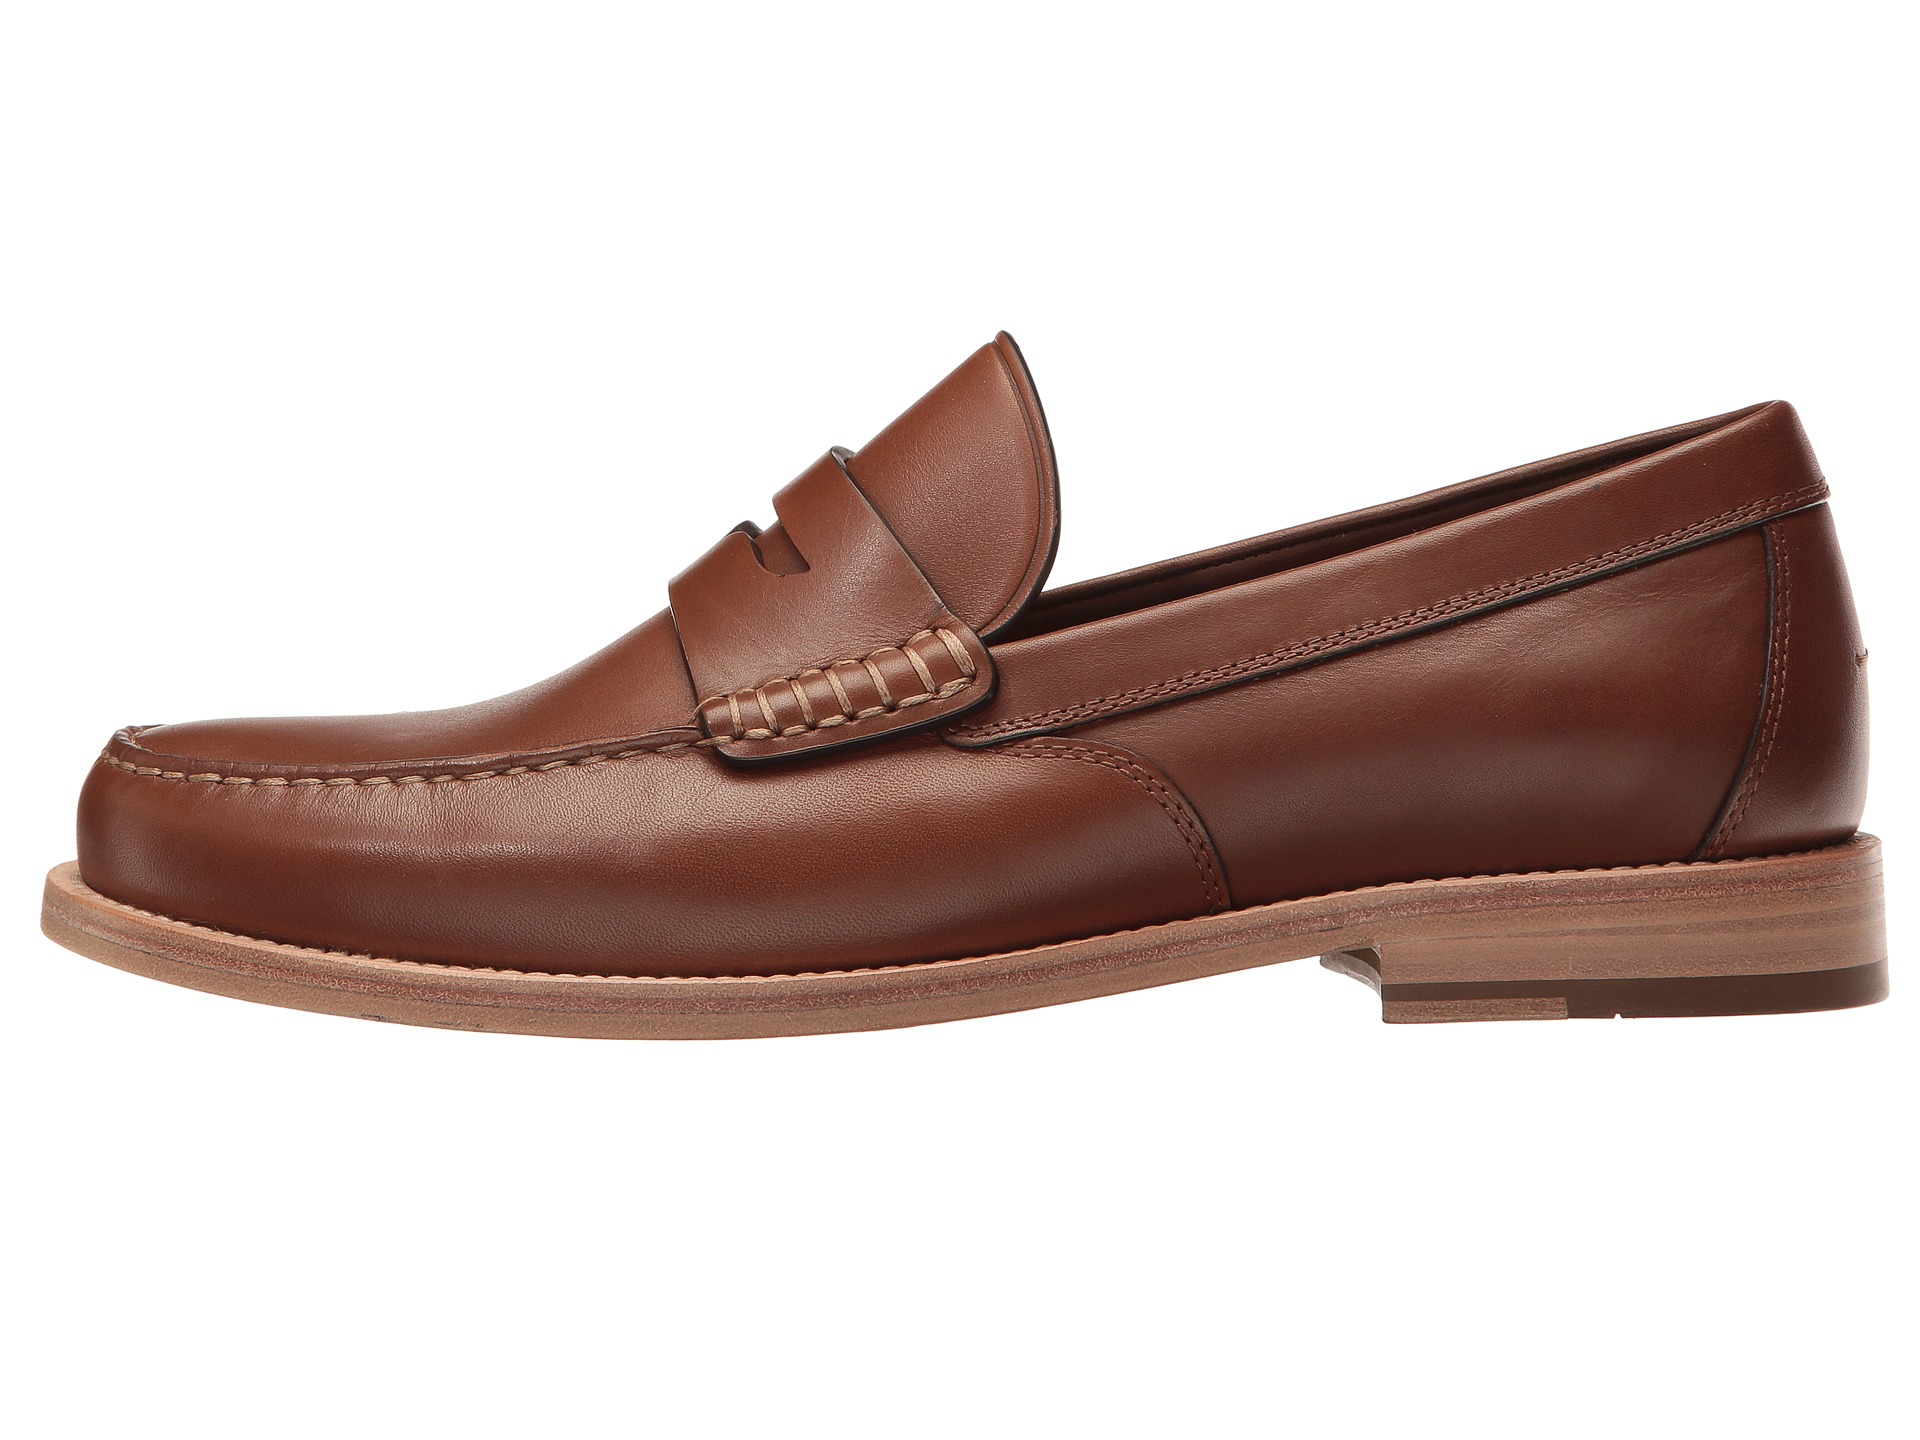 Coach Loafer Shoes Sale